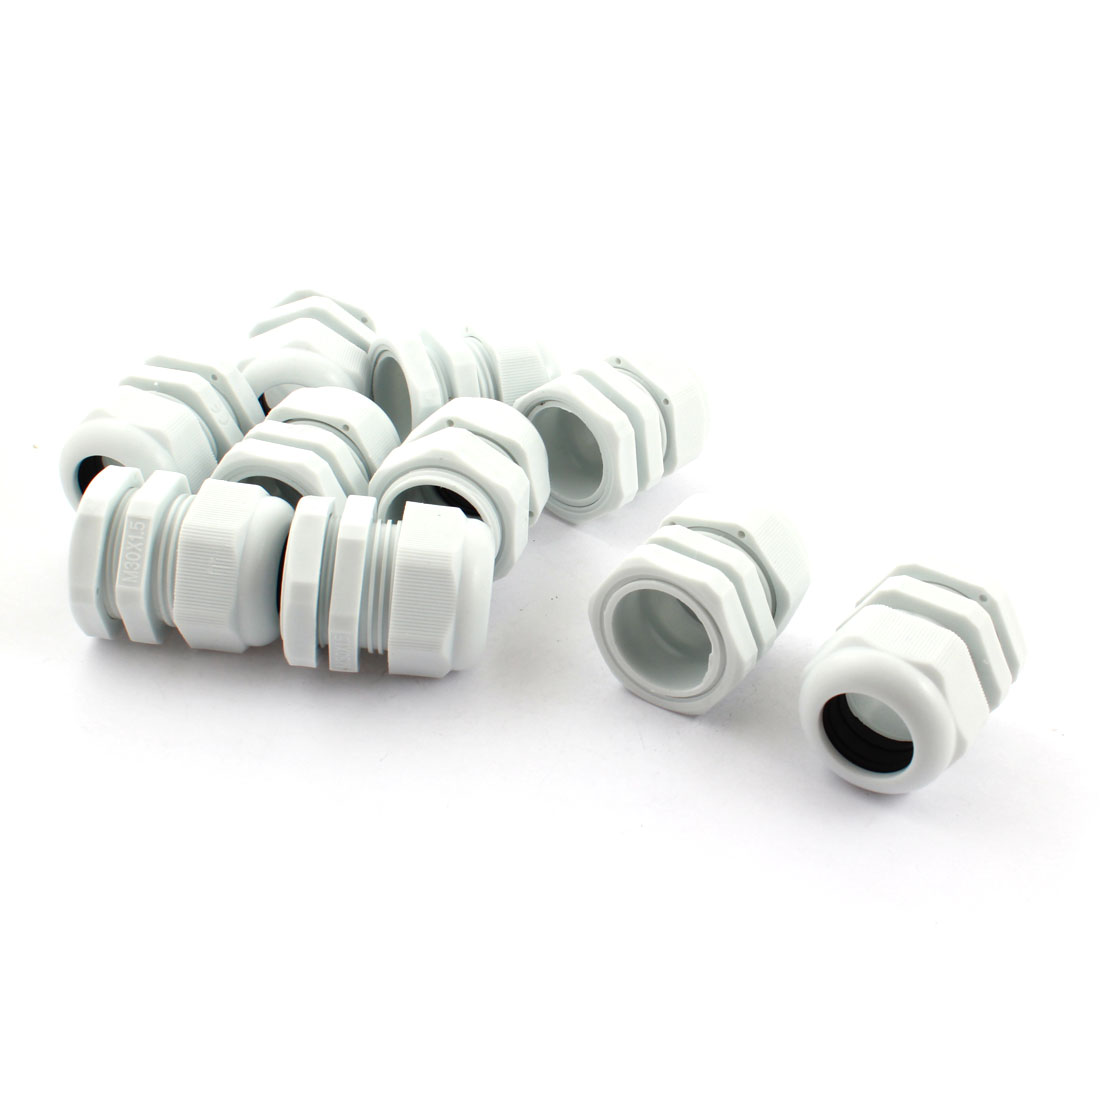 10Pcs M30X1.5 13mm to 21mm Waterproof Connector Adapter Joint Plastic Cable Gland White